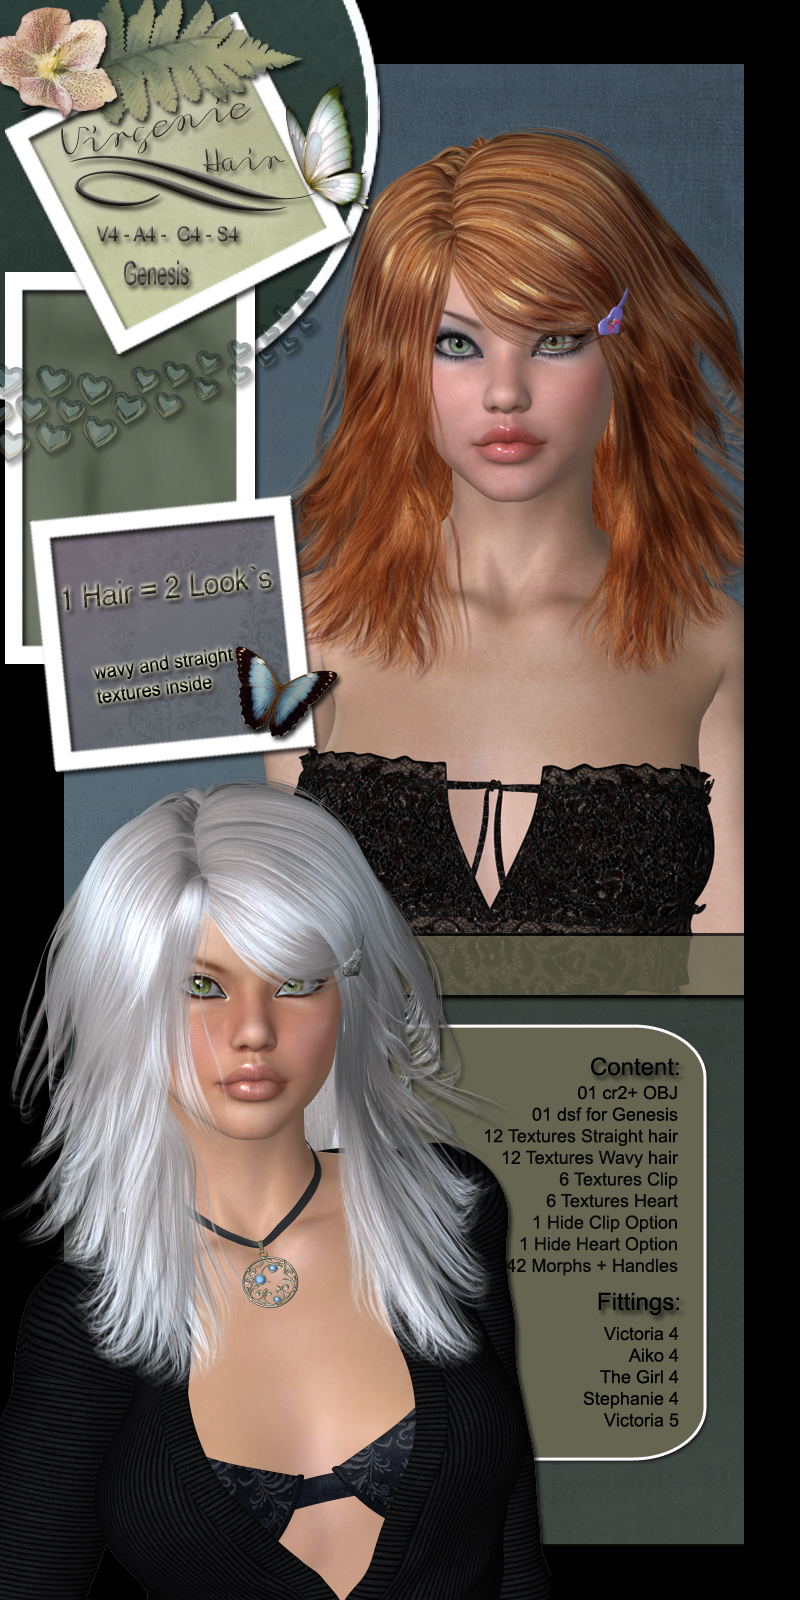 Virgenie Hair for V4 and G1